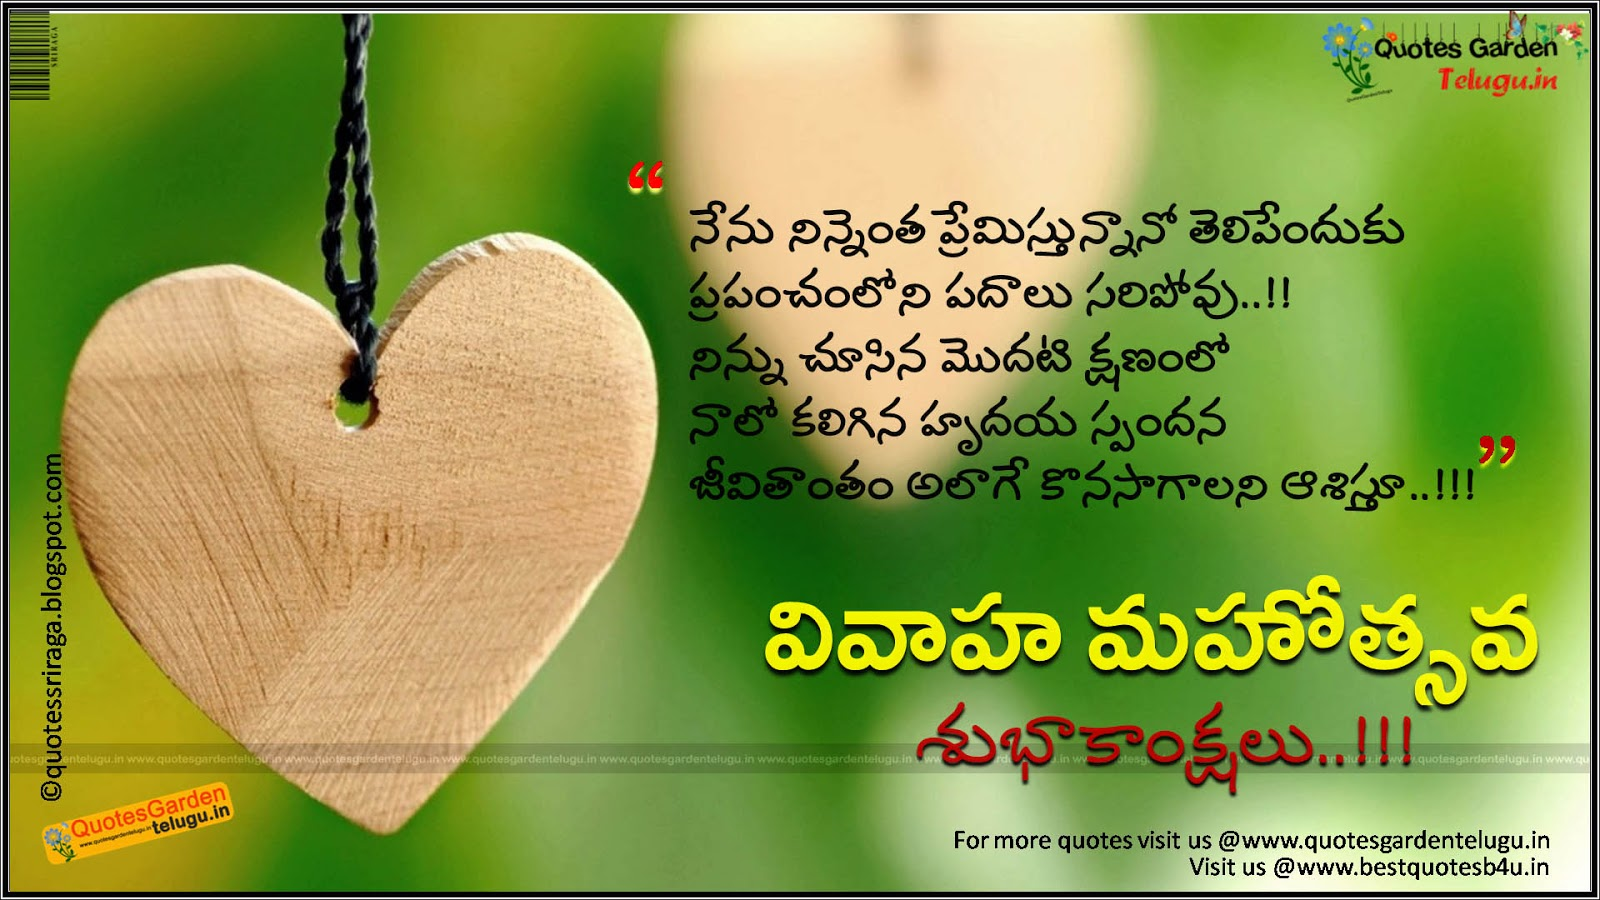 Telugu marriageday quotes greetings